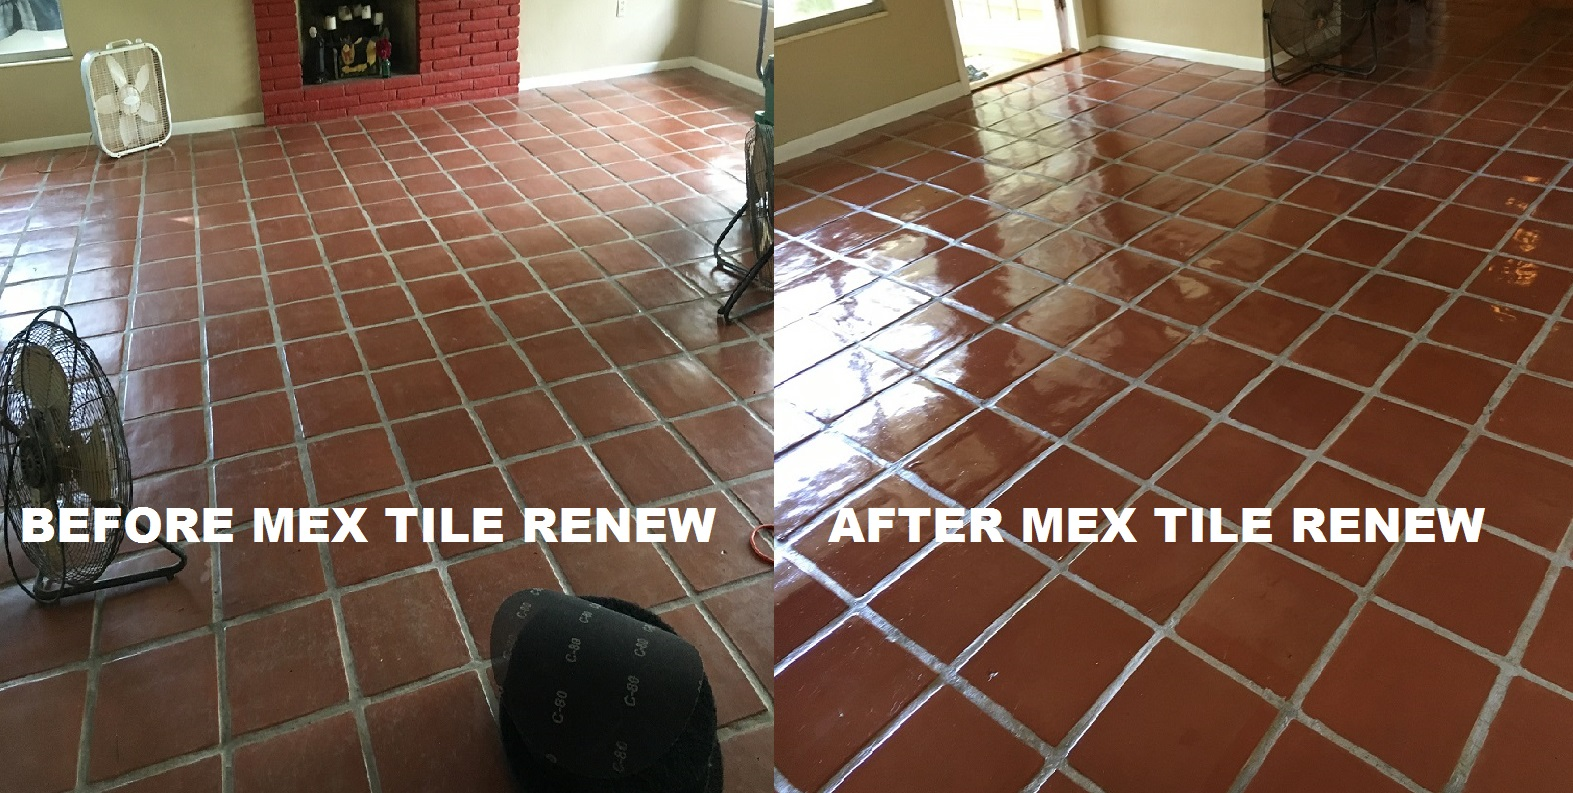 Tile cleaning stripping and sealing mexican tile sarasota mexican tile renew project in sarasota fl with light colored grout never clean your mexican tile floor with vinegar it will ruin the finish and darken the doublecrazyfo Gallery